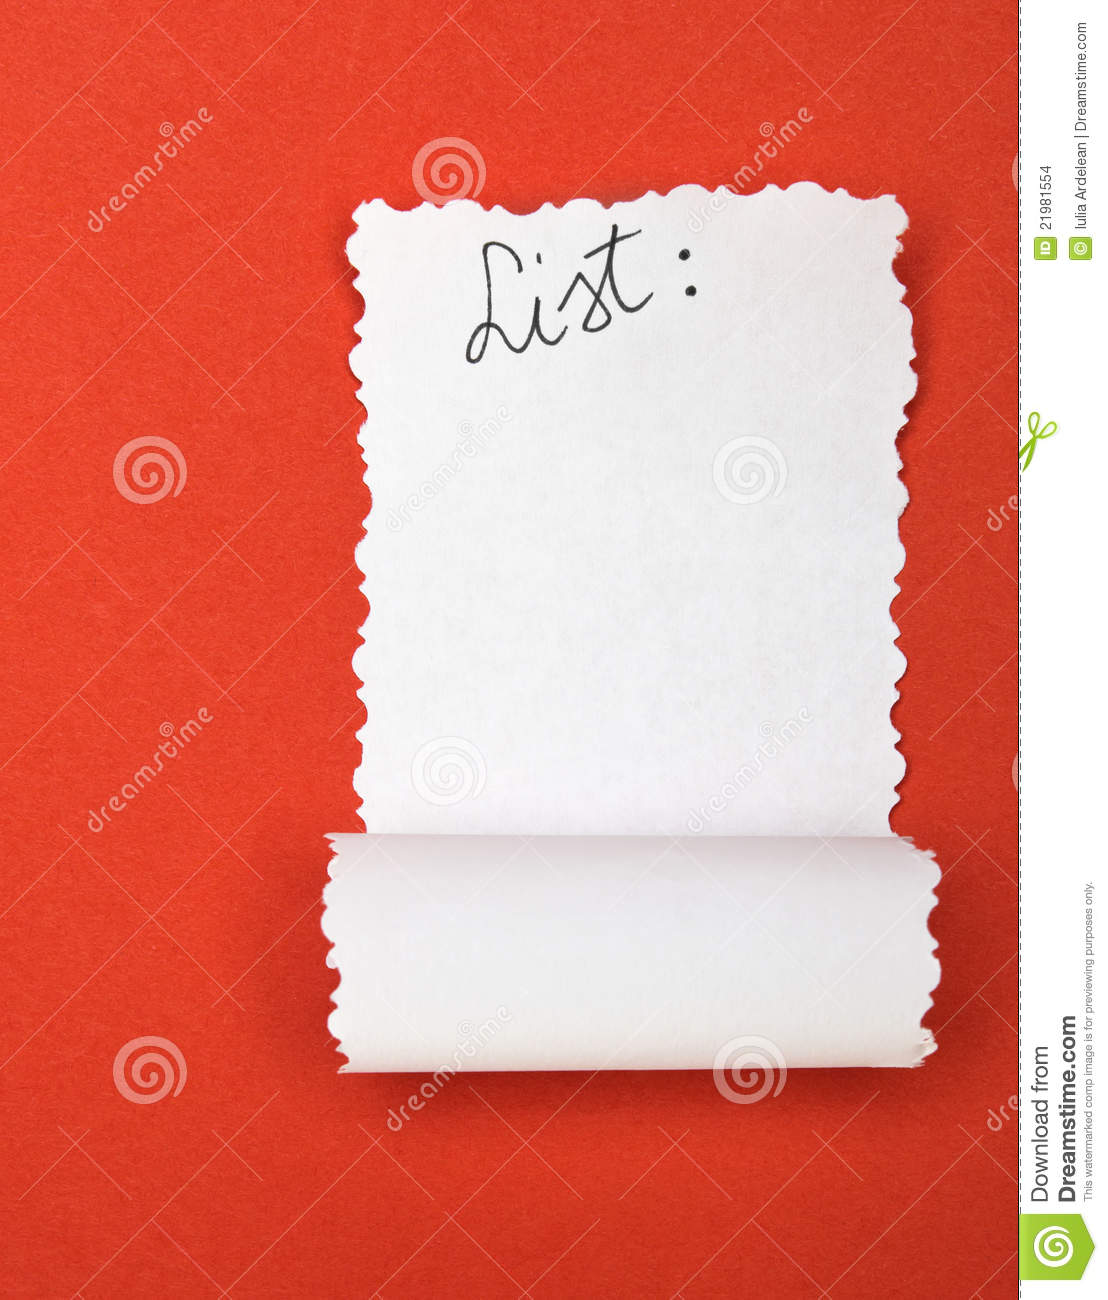 Empty List Stock Photo Image Of Symbol Ripped Page 21981554